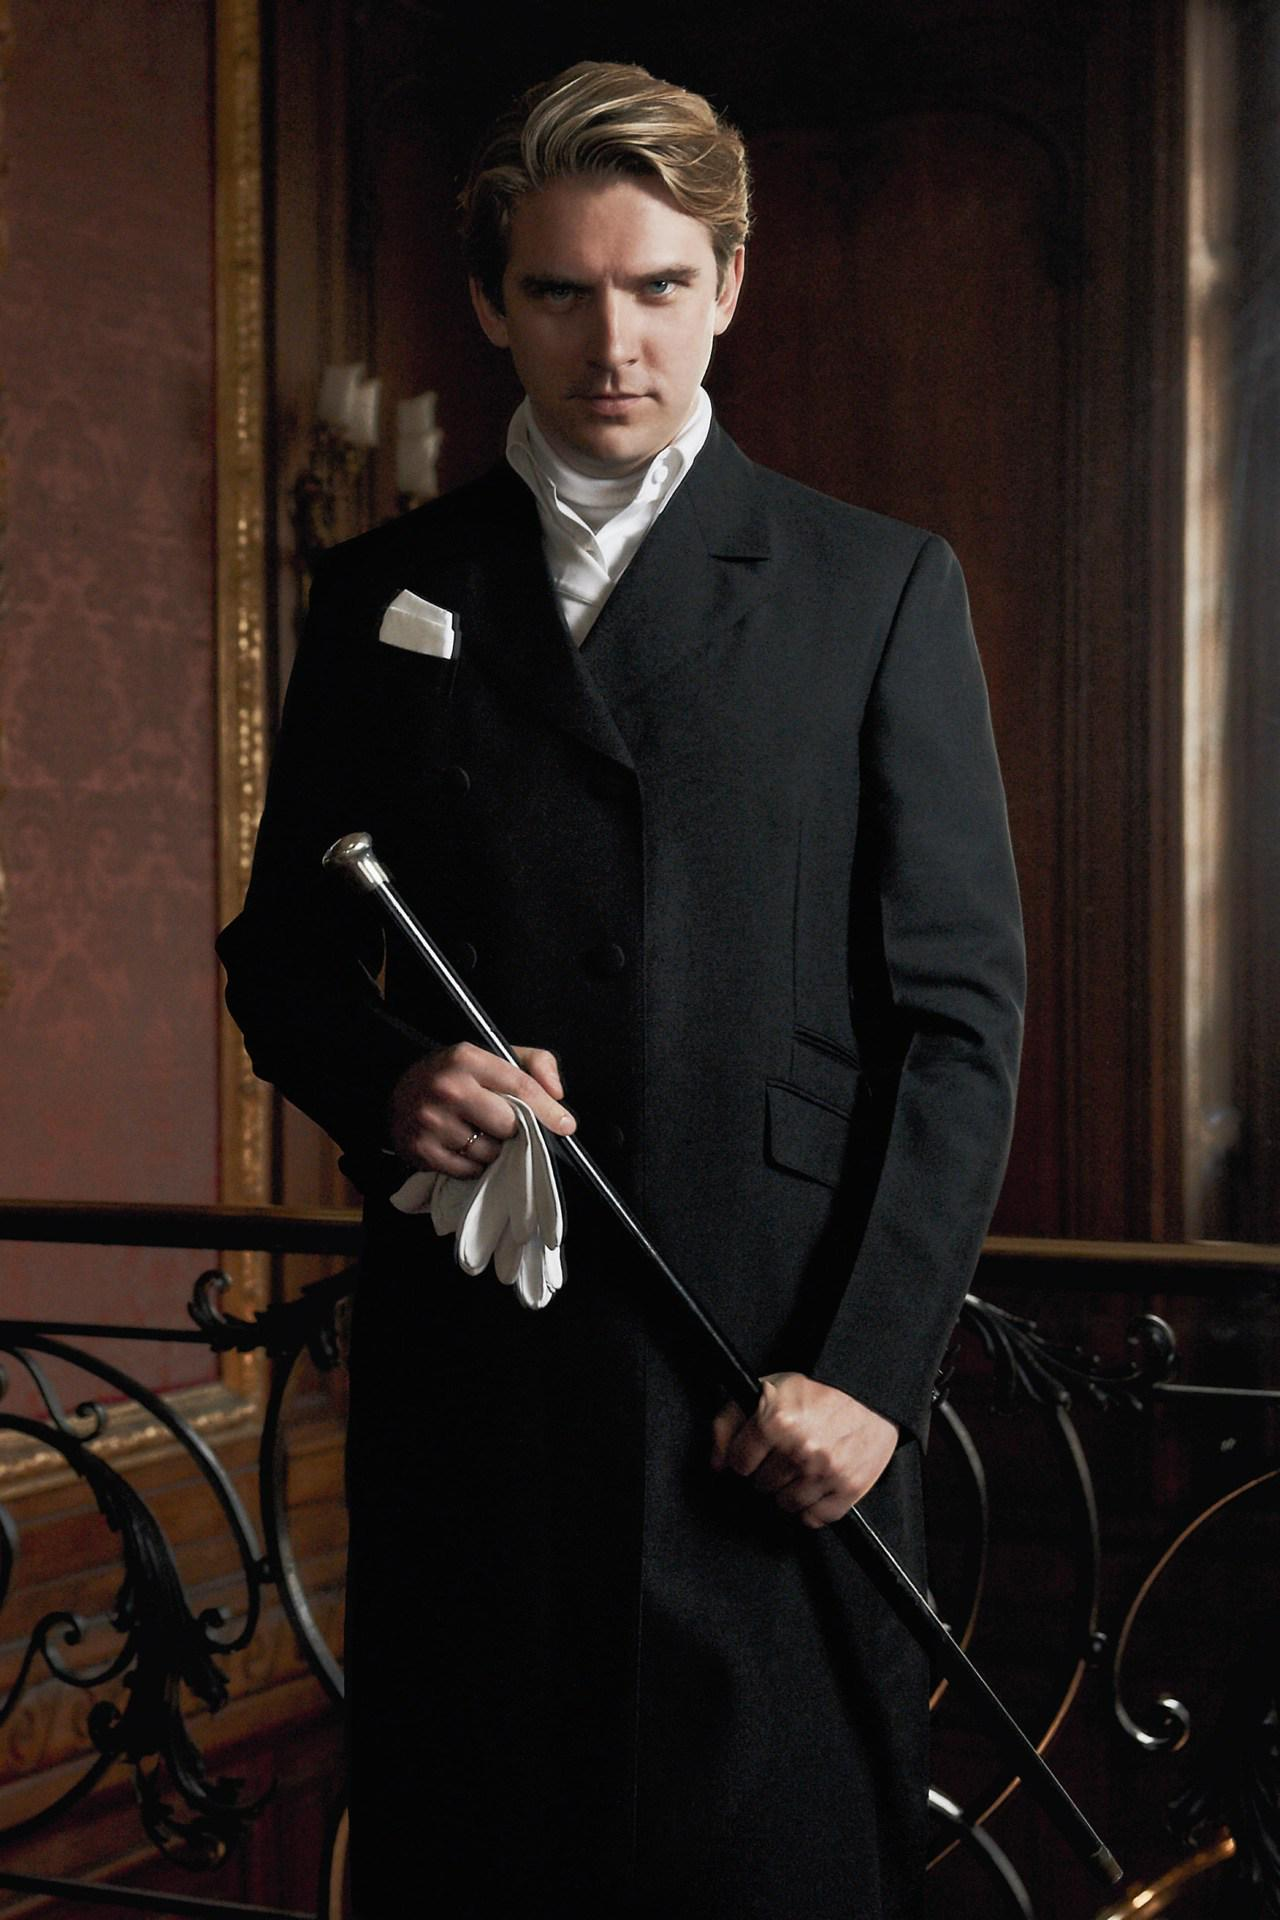 Why we're going to be seeing a lot more of @thatdanstevens - http://t.co/SwYEQ4ZdxT http://t.co/f0gBhoiHD8